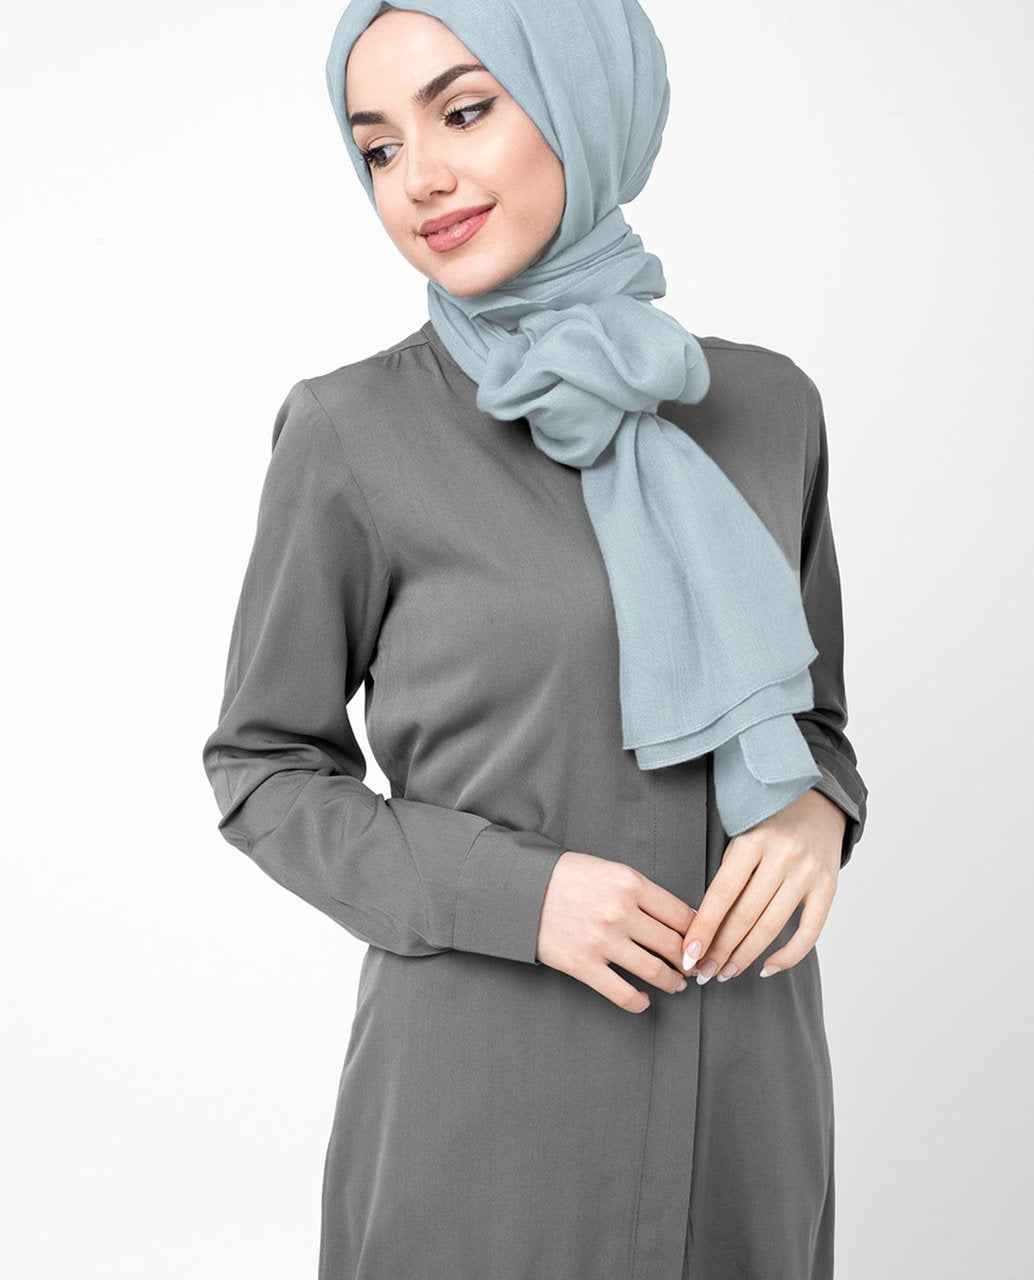 Ballad Blue Viscose Woven Hijab Regular Ballad Blue